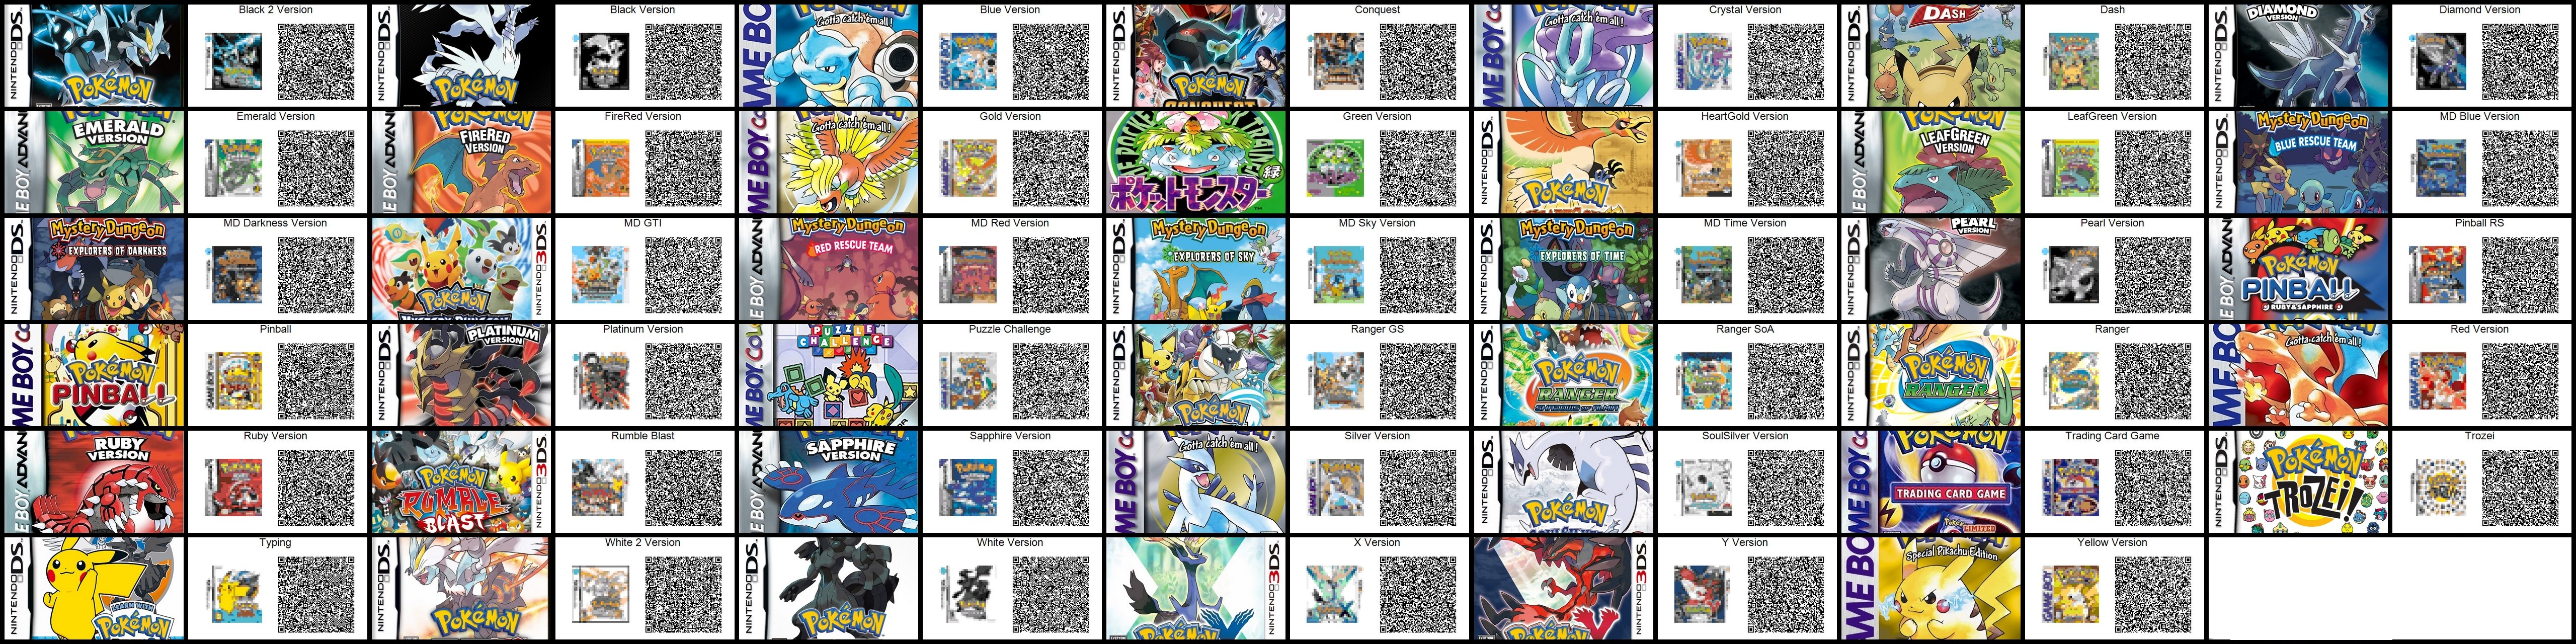 Pokemon Games Pattern QRcodes for ACNL by toxicsquall on DeviantArt